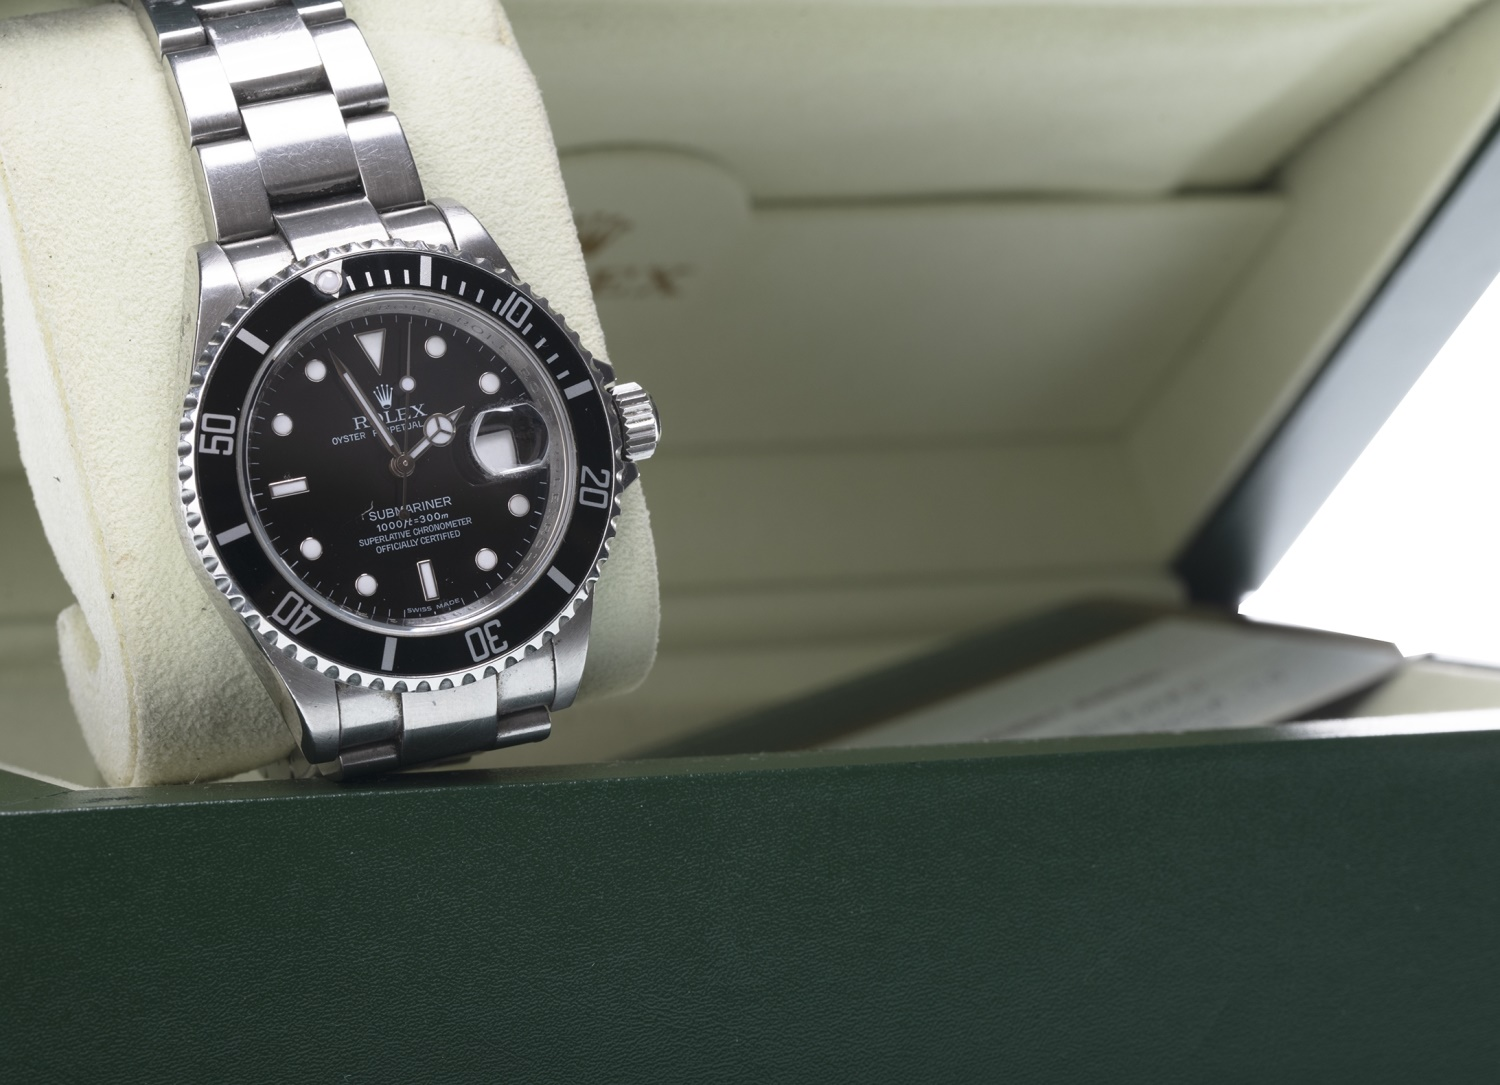 Lot 859 - GENTLEMAN'S ROLEX OYSTER PERPETUAL DATE SUBMARINER STAINLESS STEEL AUTOMATIC WRIST WATCH